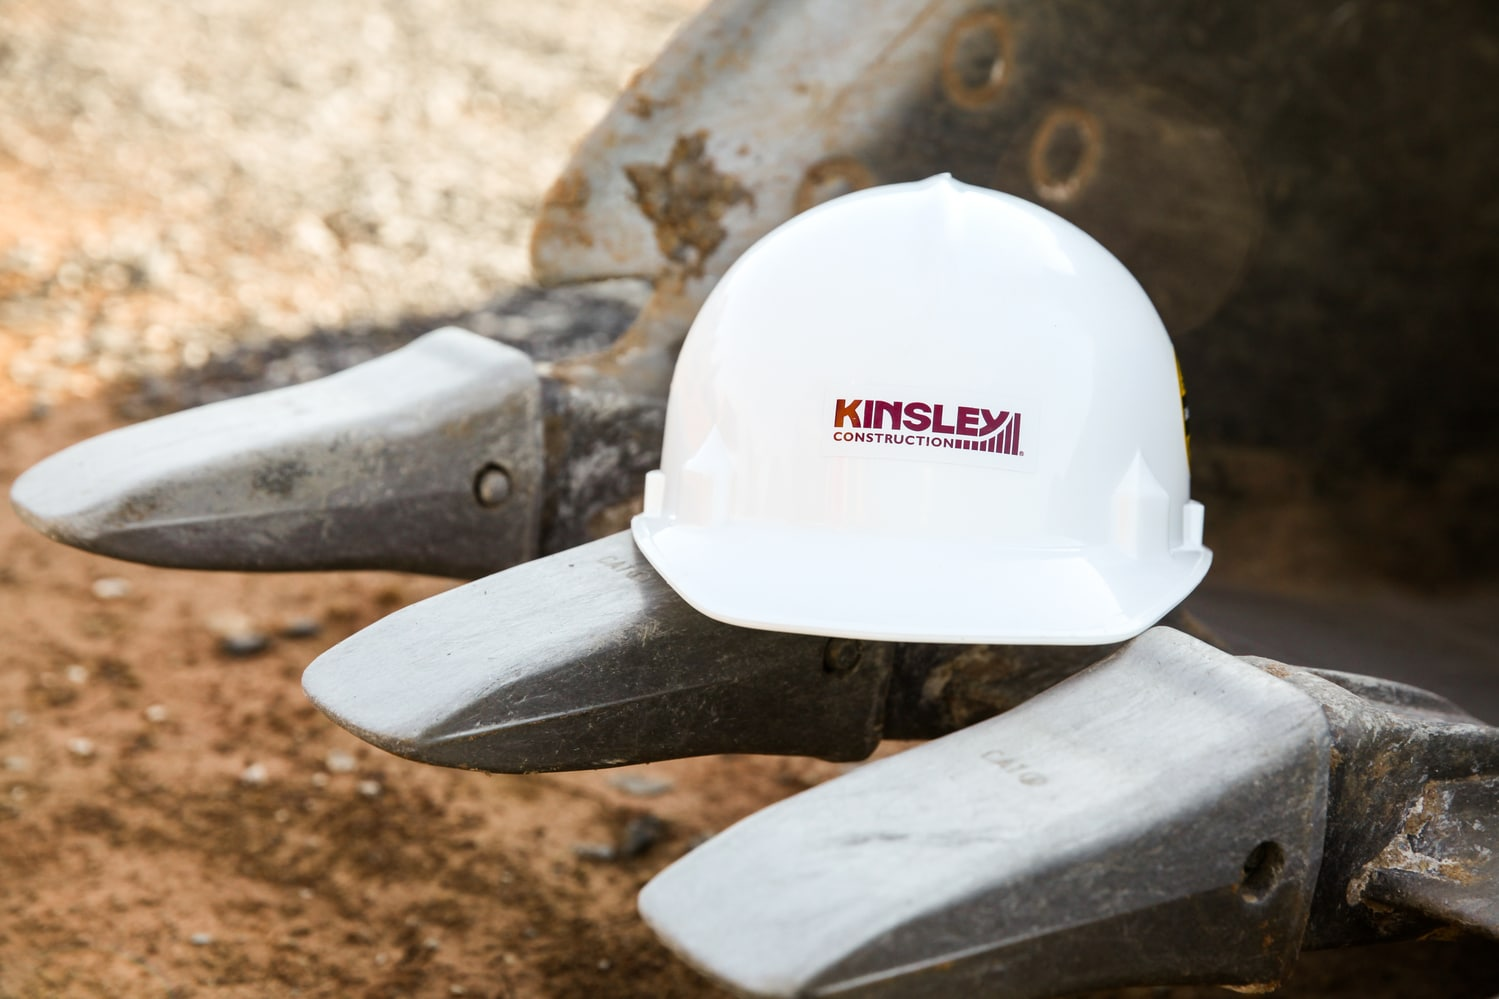 Close-up of a hard hat